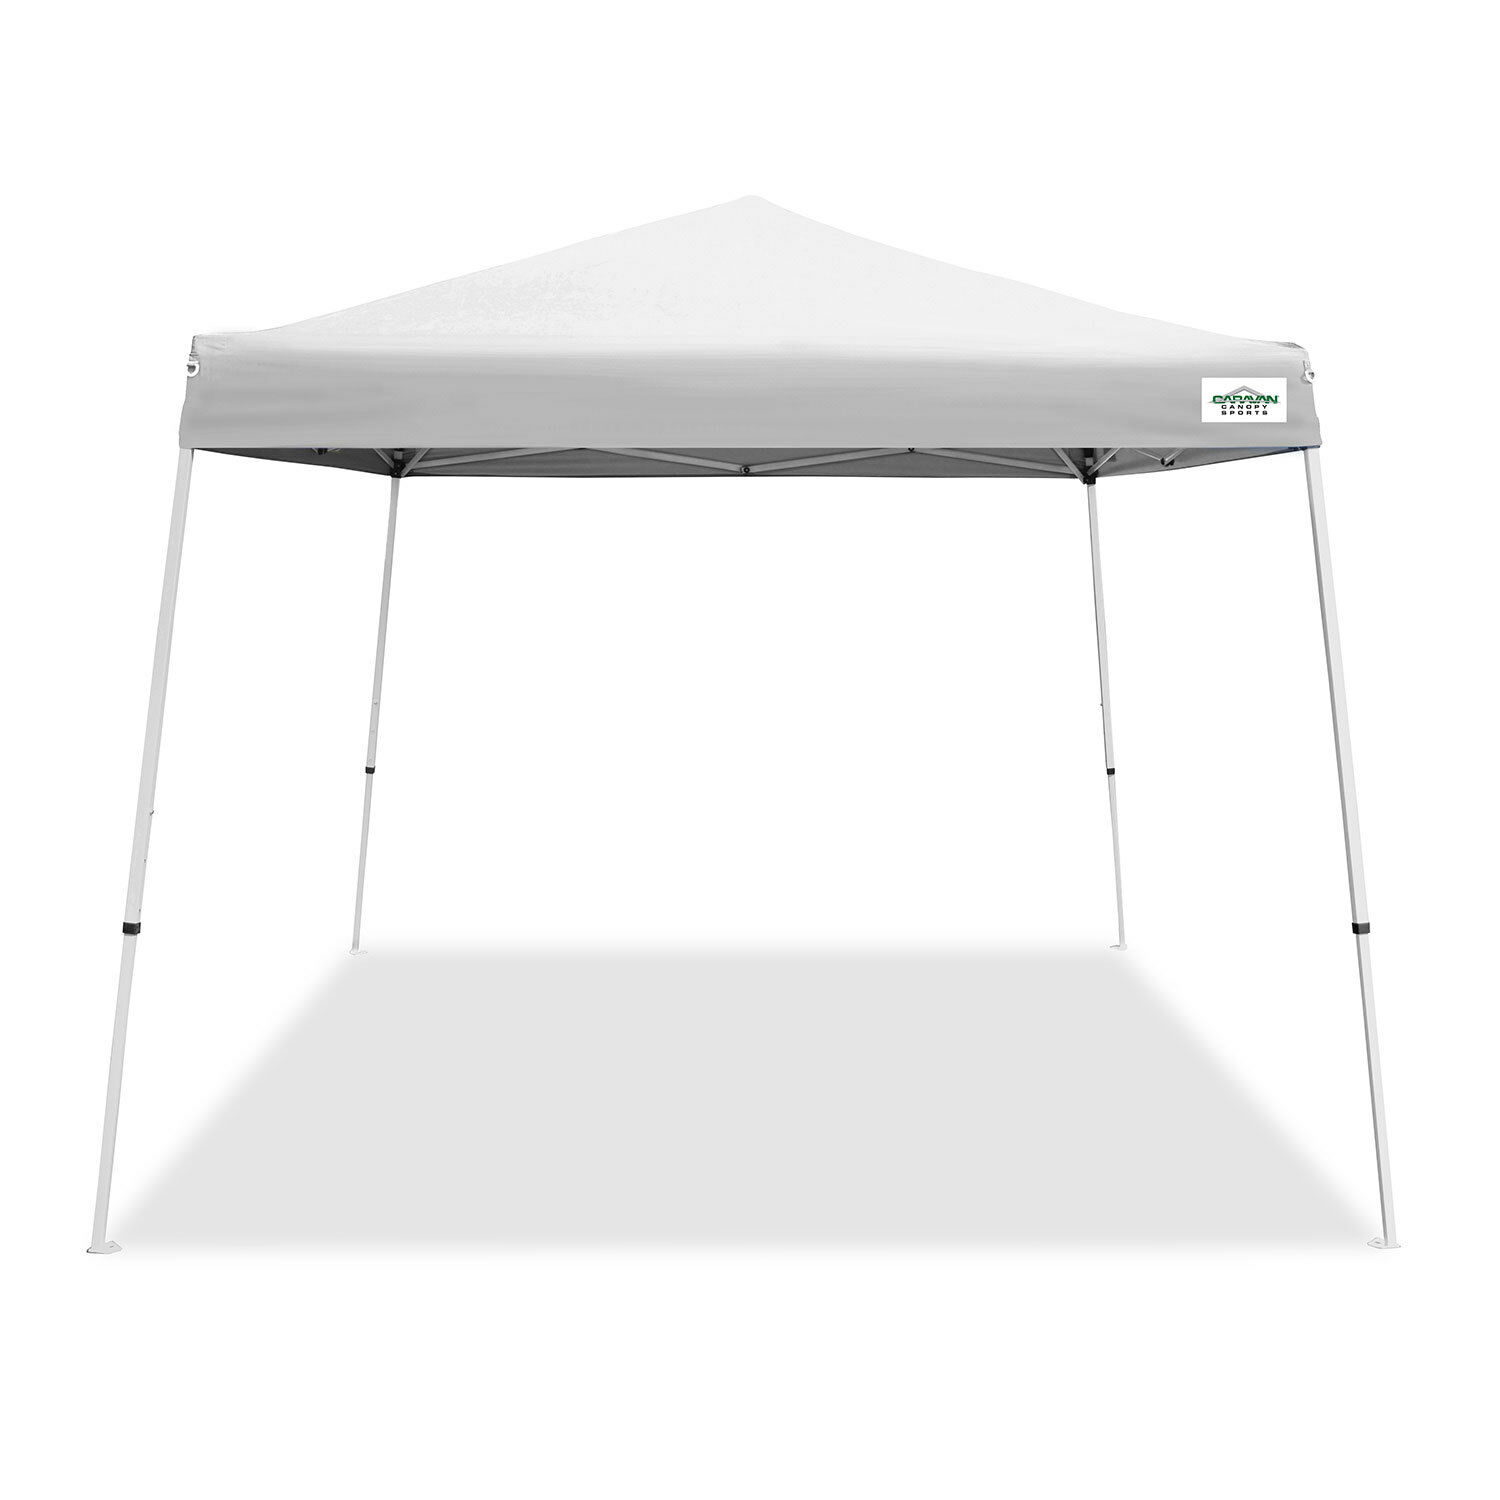 Caravan Canopy V Series 2 10' x 10' Entry Level Instant Angled Leg Instant Level Canopy, Weiß 6c88b2